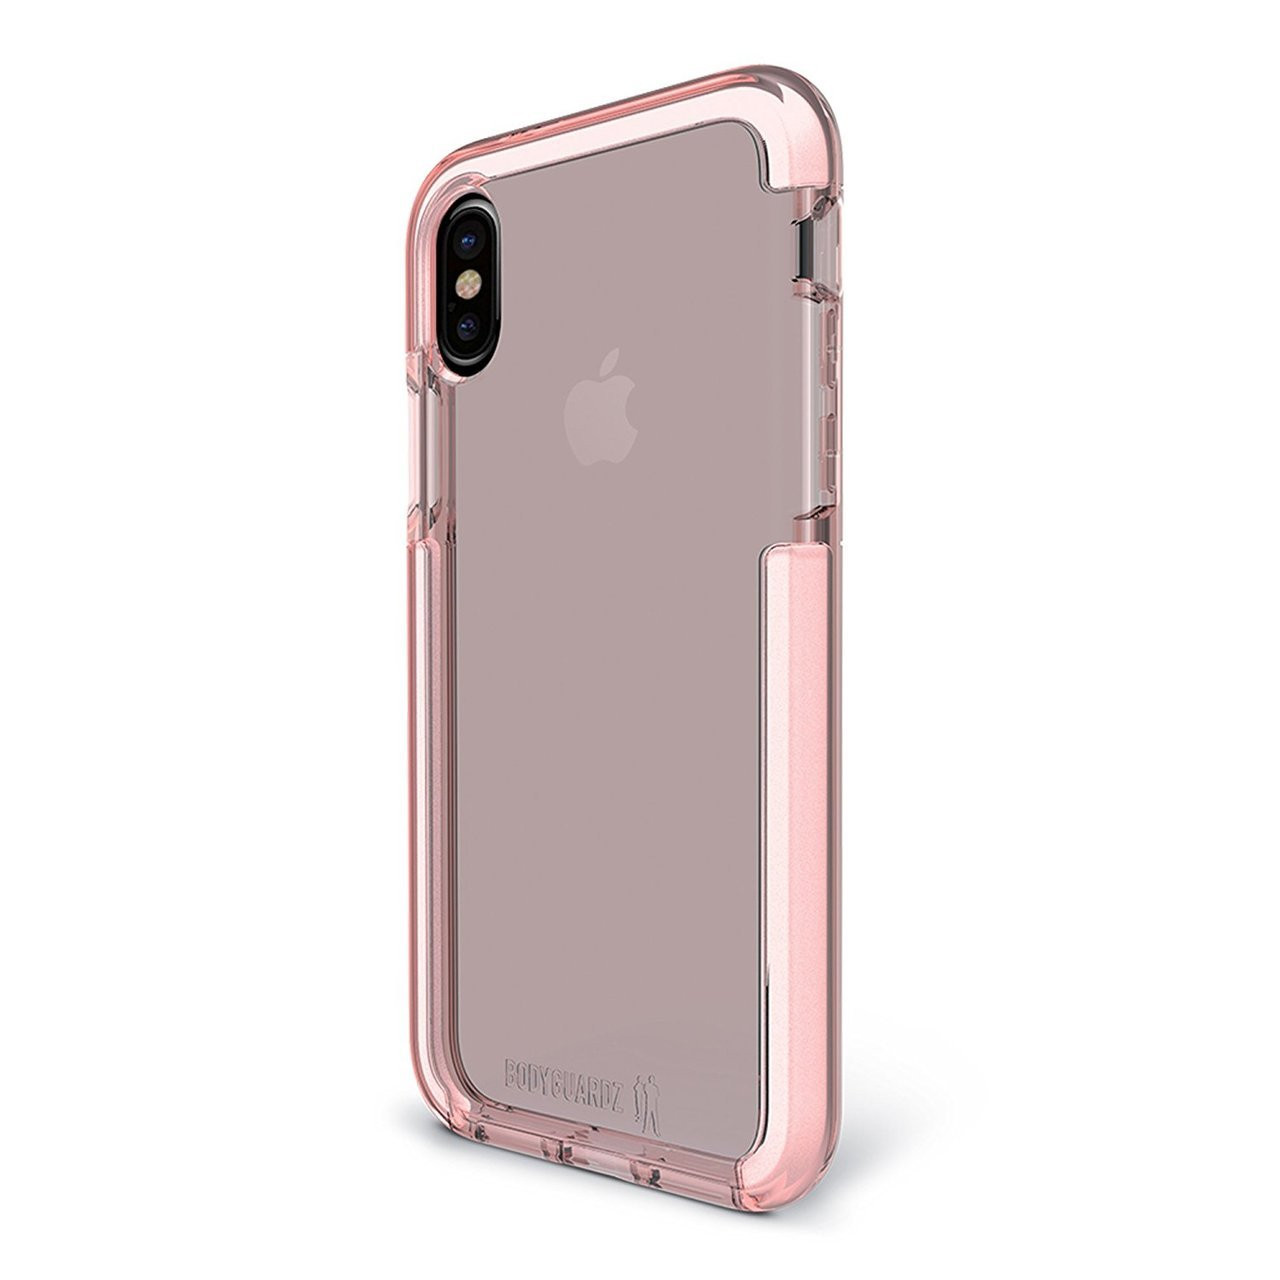 d2f4a4c2a7 BodyGuardz Ace Pro Unequal Case for iPhone X/Xs - Pink/White